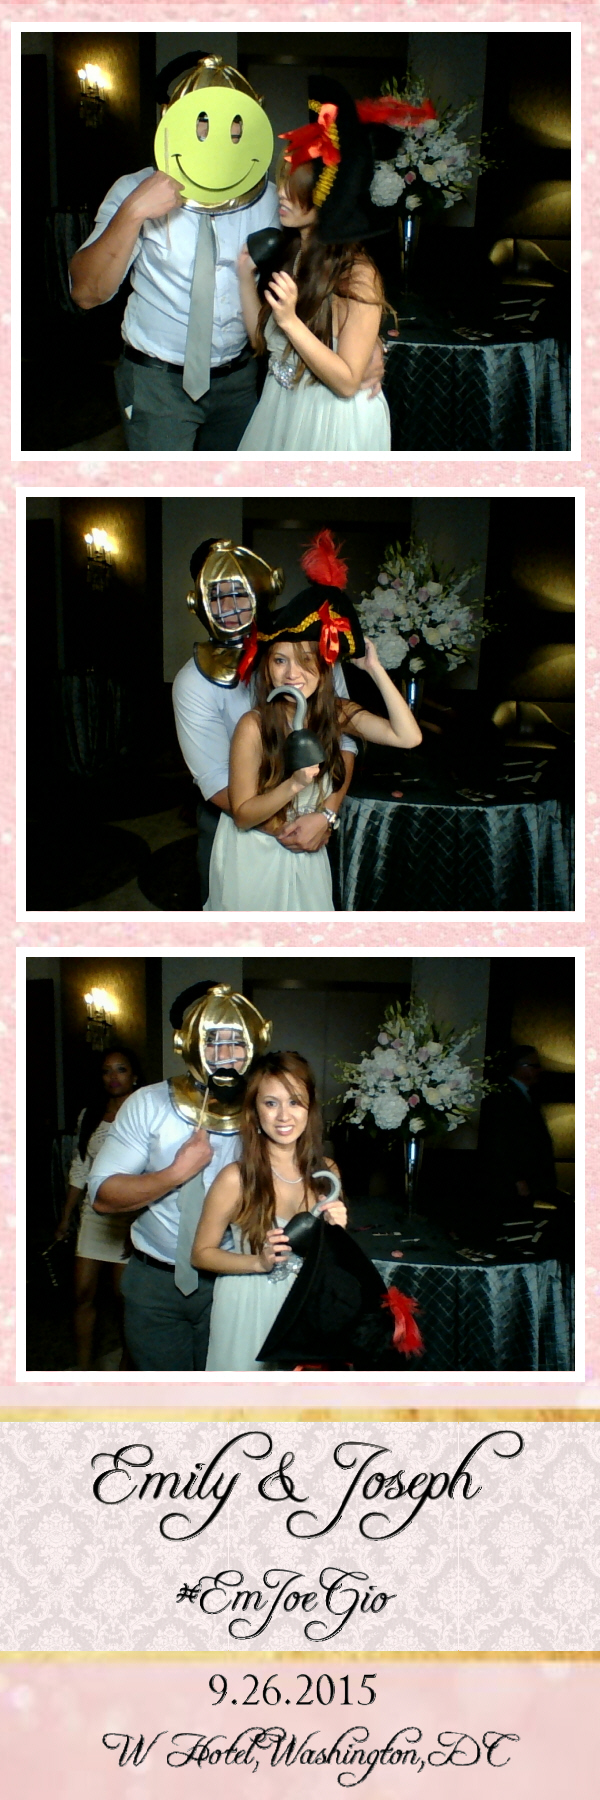 Guest House Events Photo Booth E&J (46).jpg